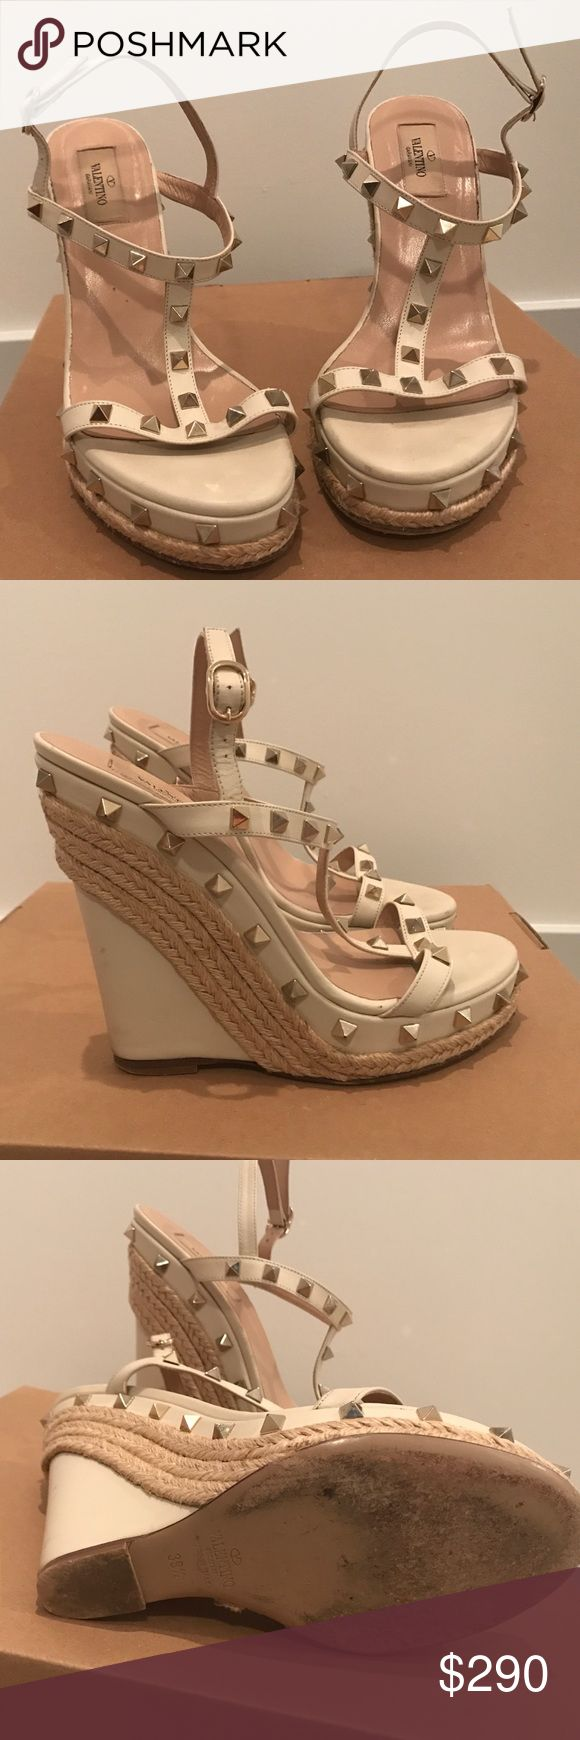 Valentino Wedges Valentino 'Rockstud' wedges worn 5-6 times. Size 39.5 Valentino Shoes Wedges